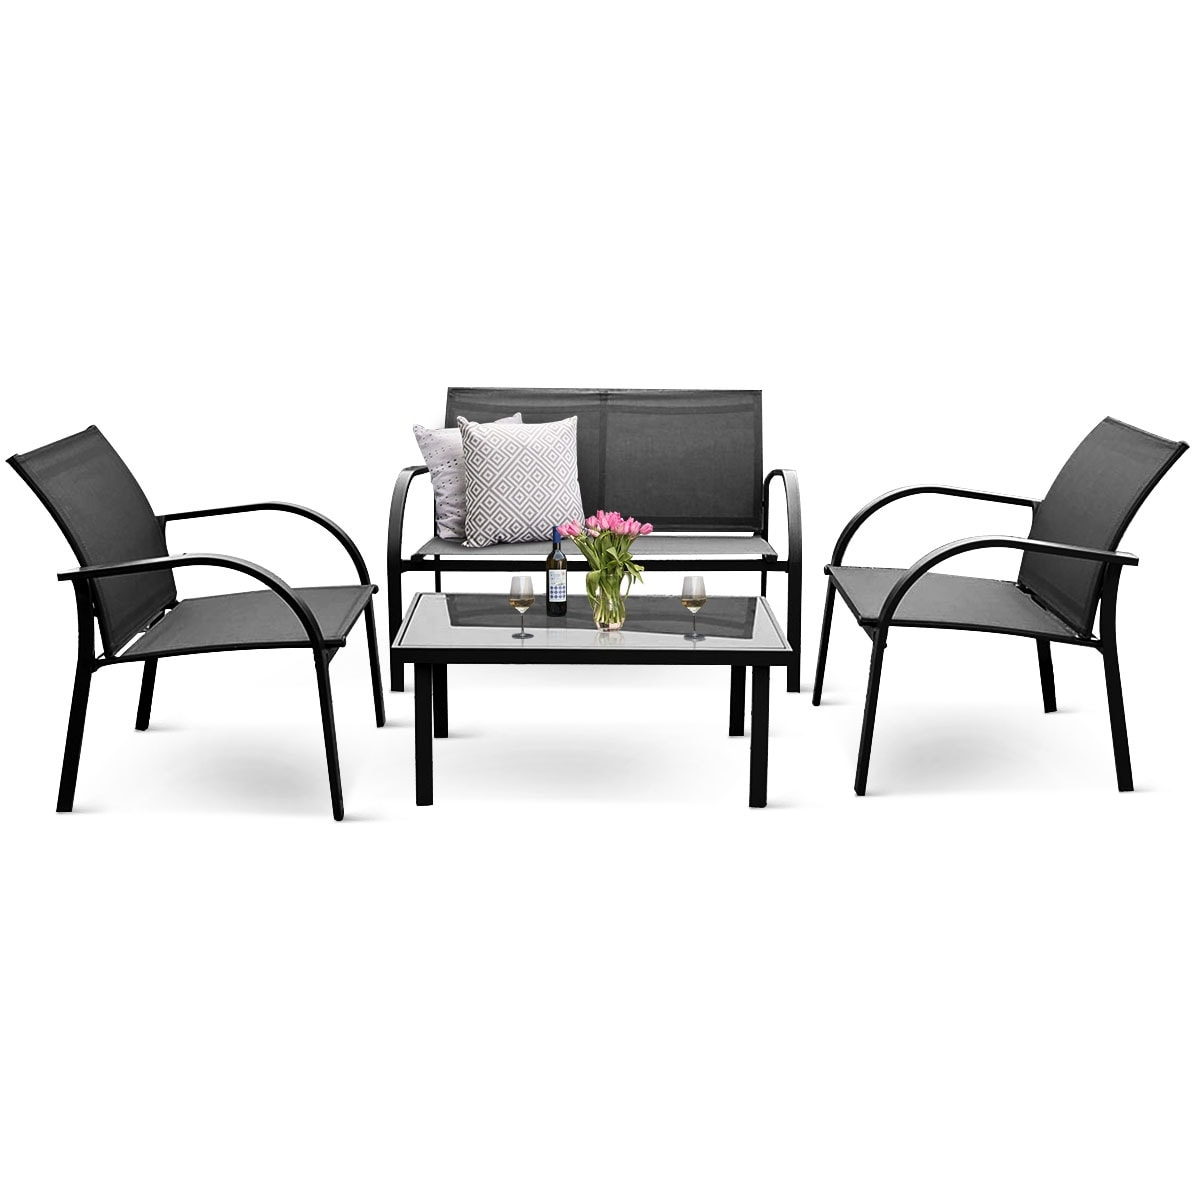 Costway 10PCS Patio Garden Furniture Set Steel Frame Outdoor Lawn Sofa  Chairs Table Gray